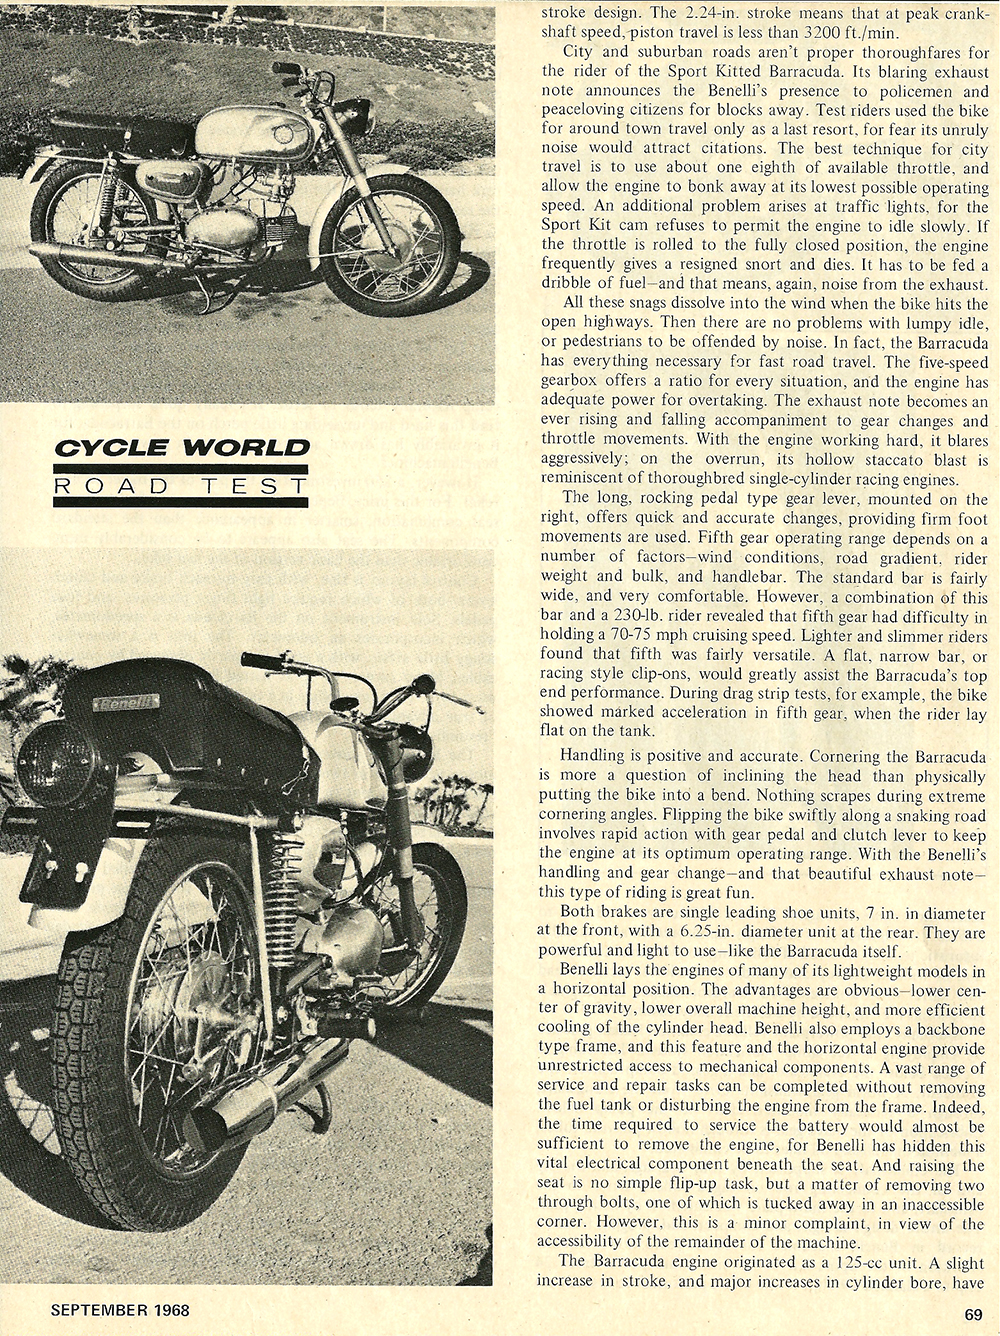 1968 Benelli Barracuda 250 road test 02.jpg